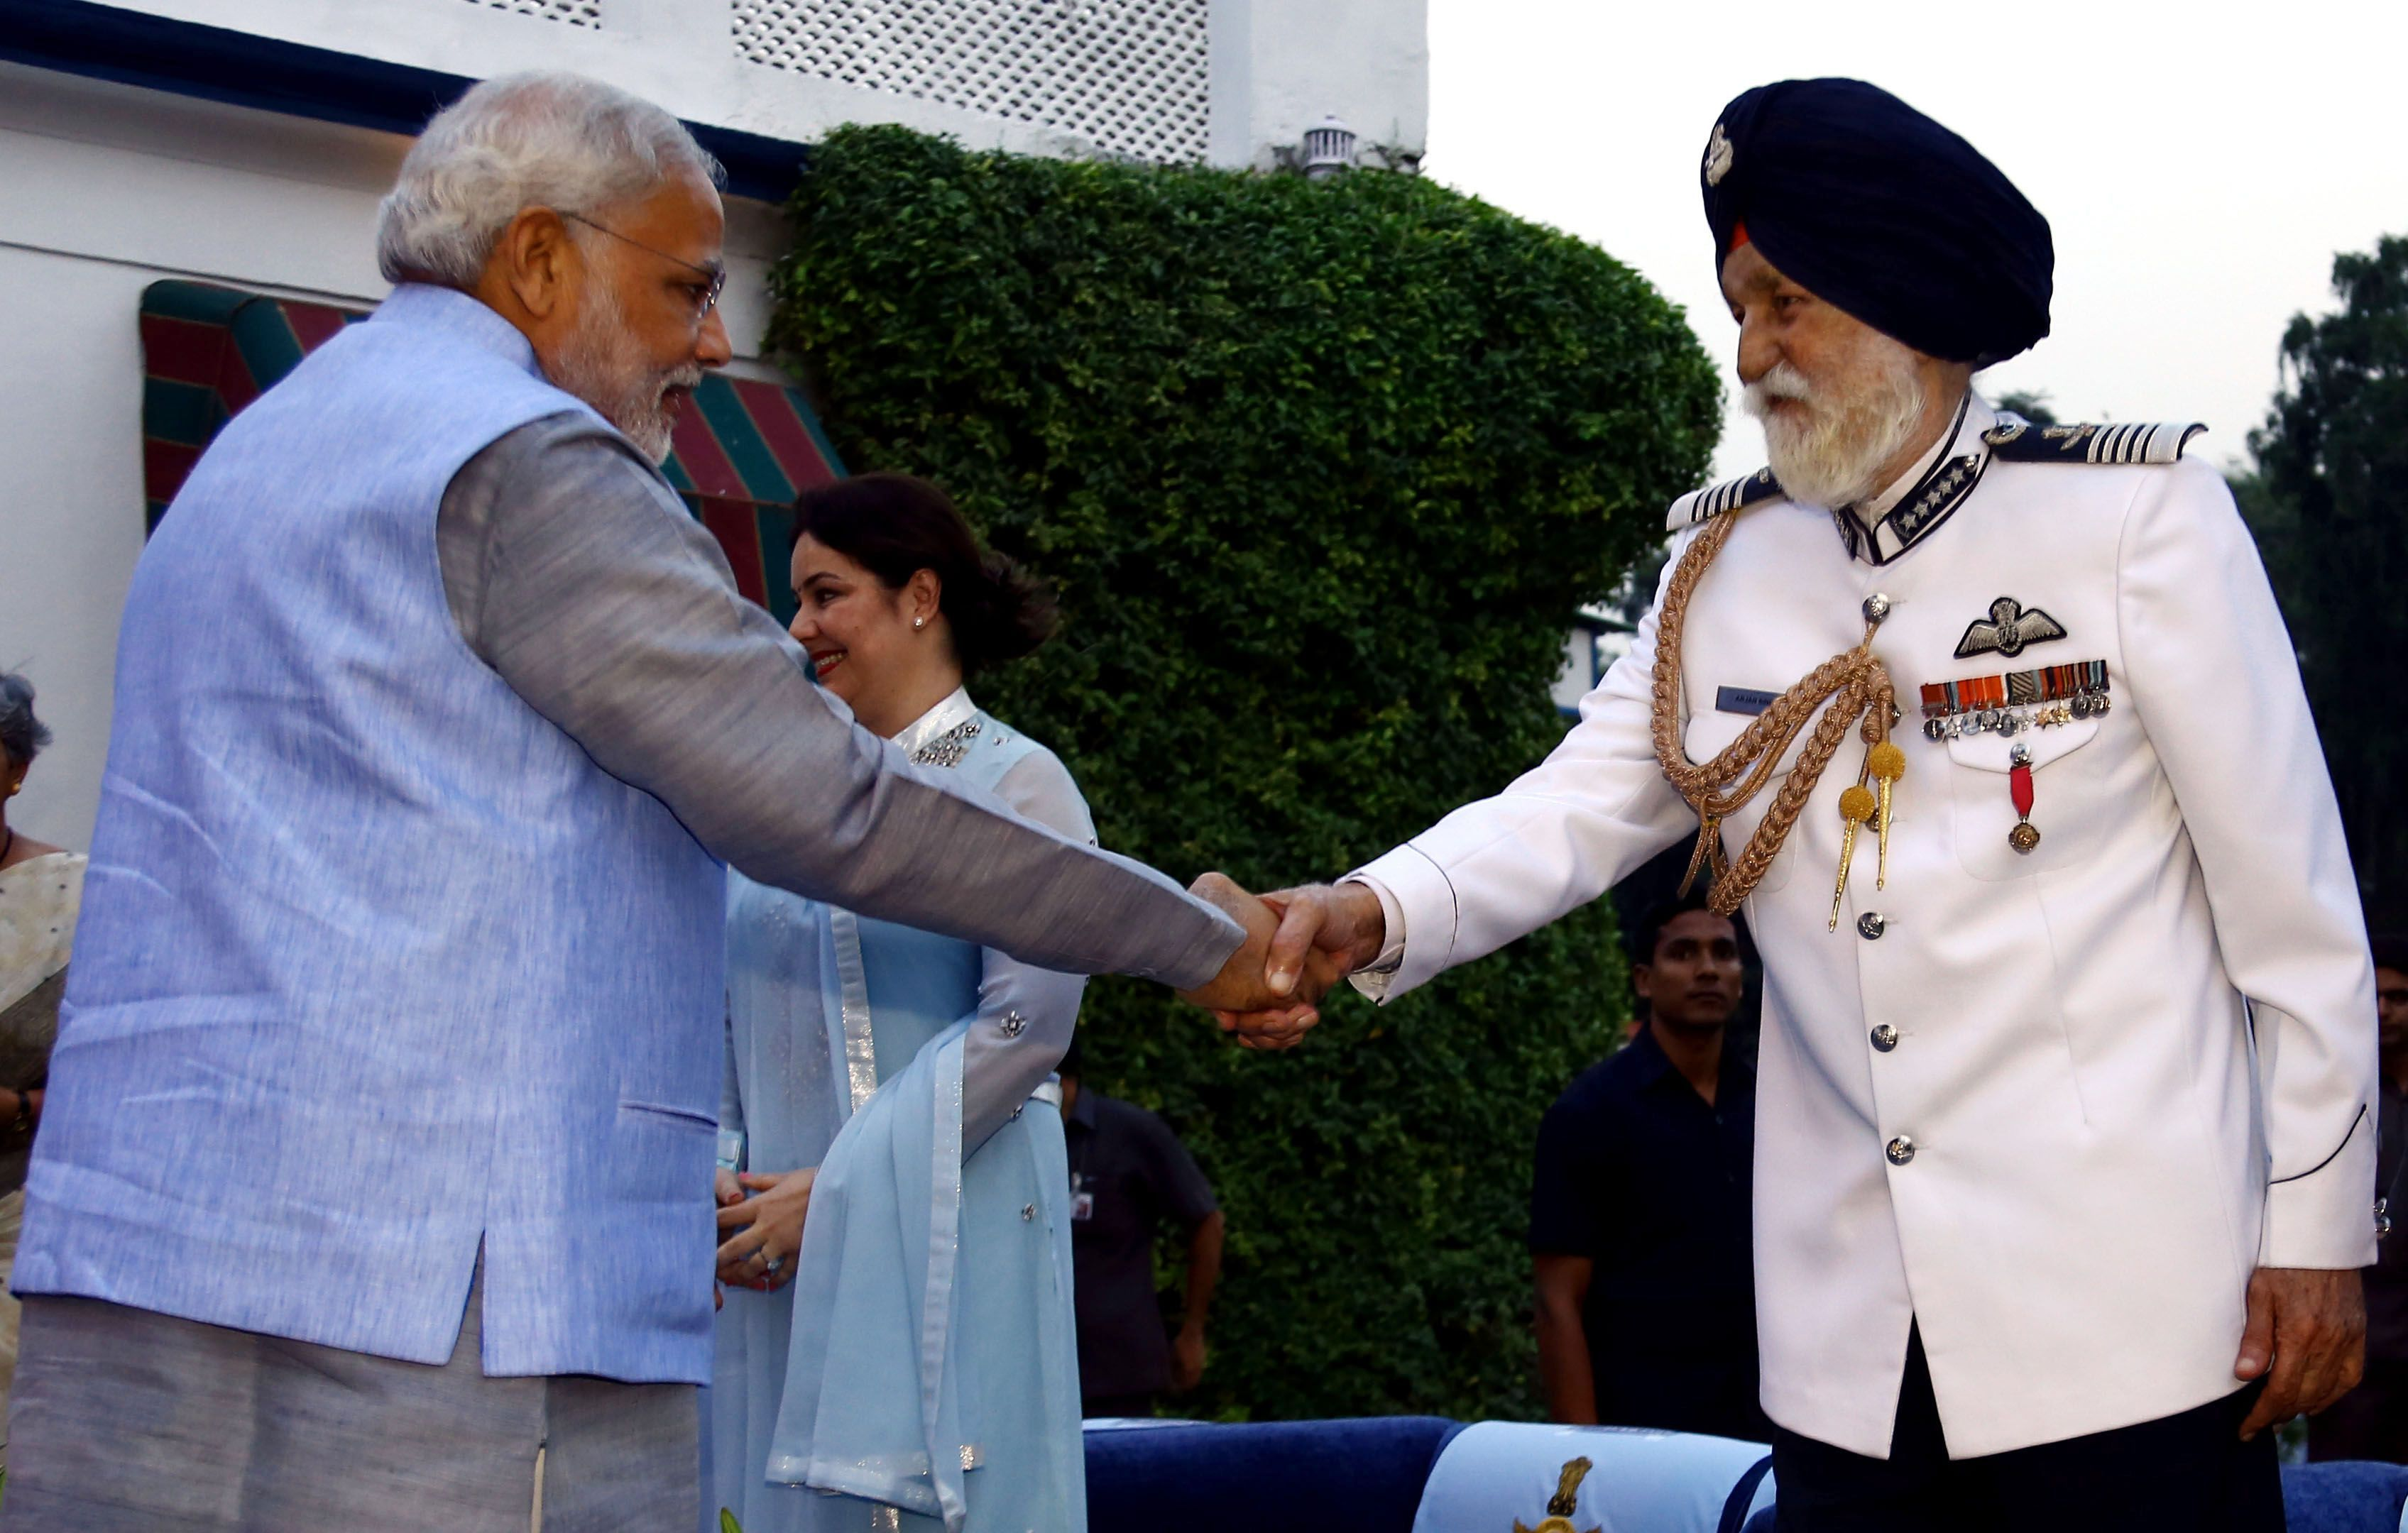 Prime Minister, Shri Narendra Modi meets the Marshal of the Air Force, Air Chief Marshal Arjan Singh during Air Force Day celebration at Air House on 08 Oct 14.